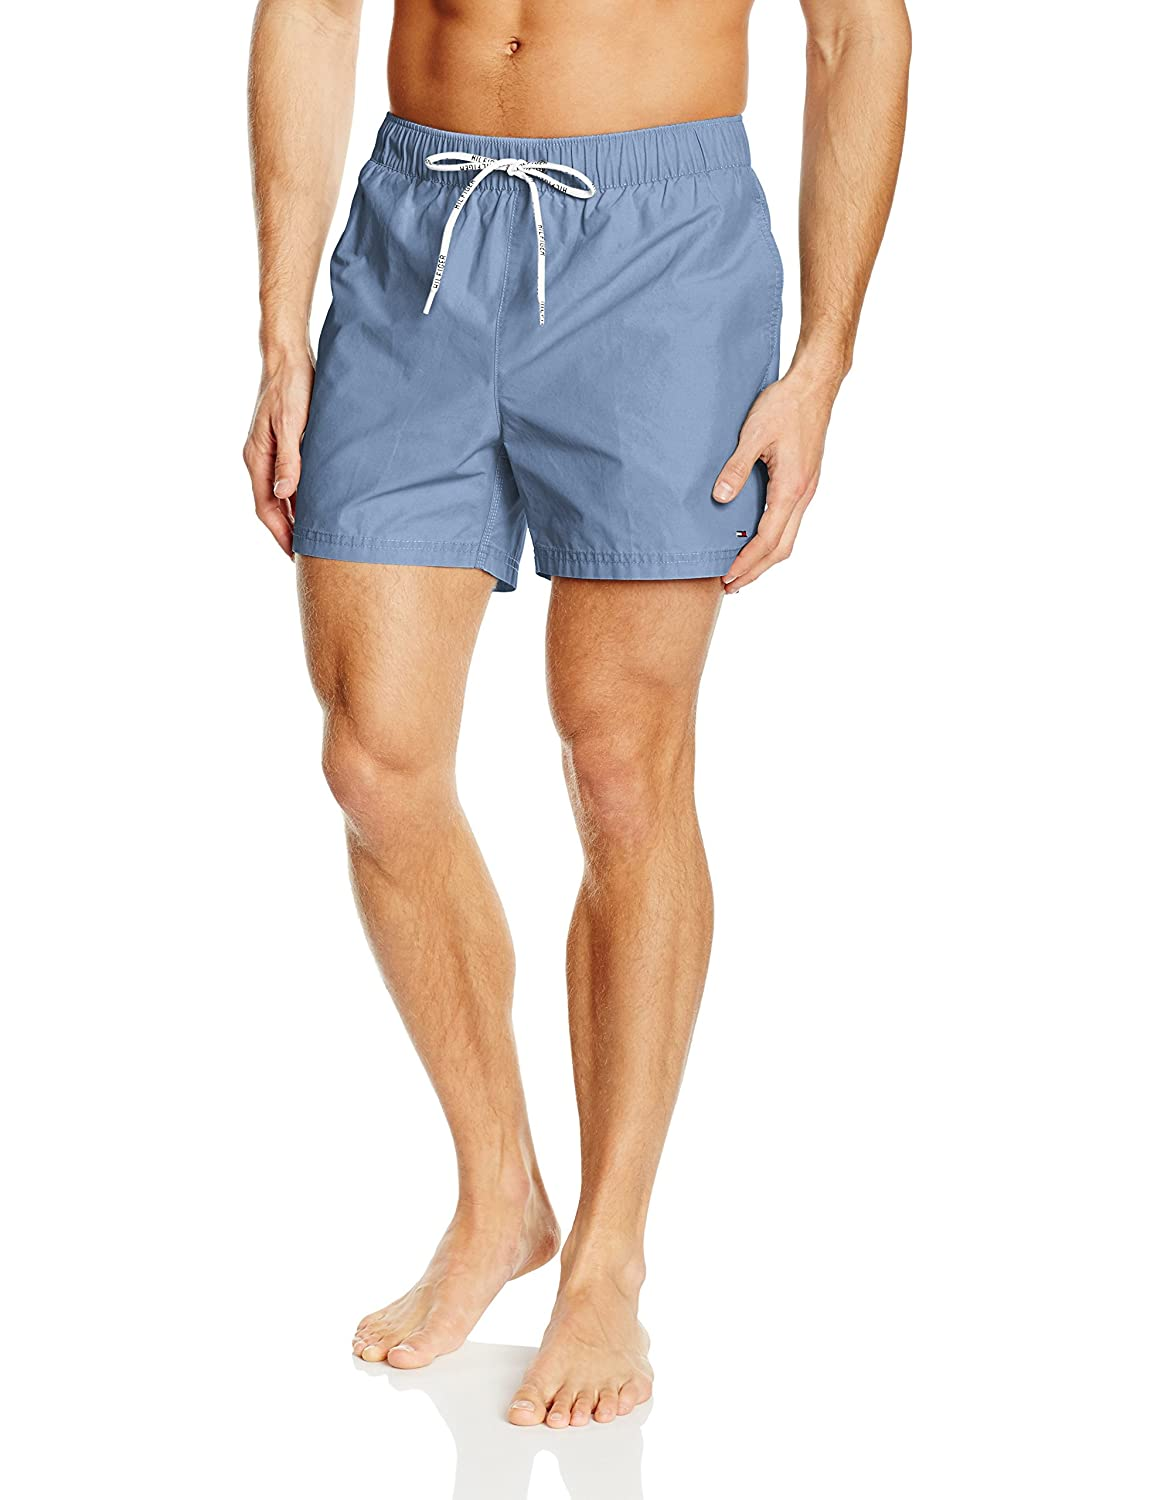 Hilfiger Denim Herren Badeshorts Solid Washed Swim Short 1